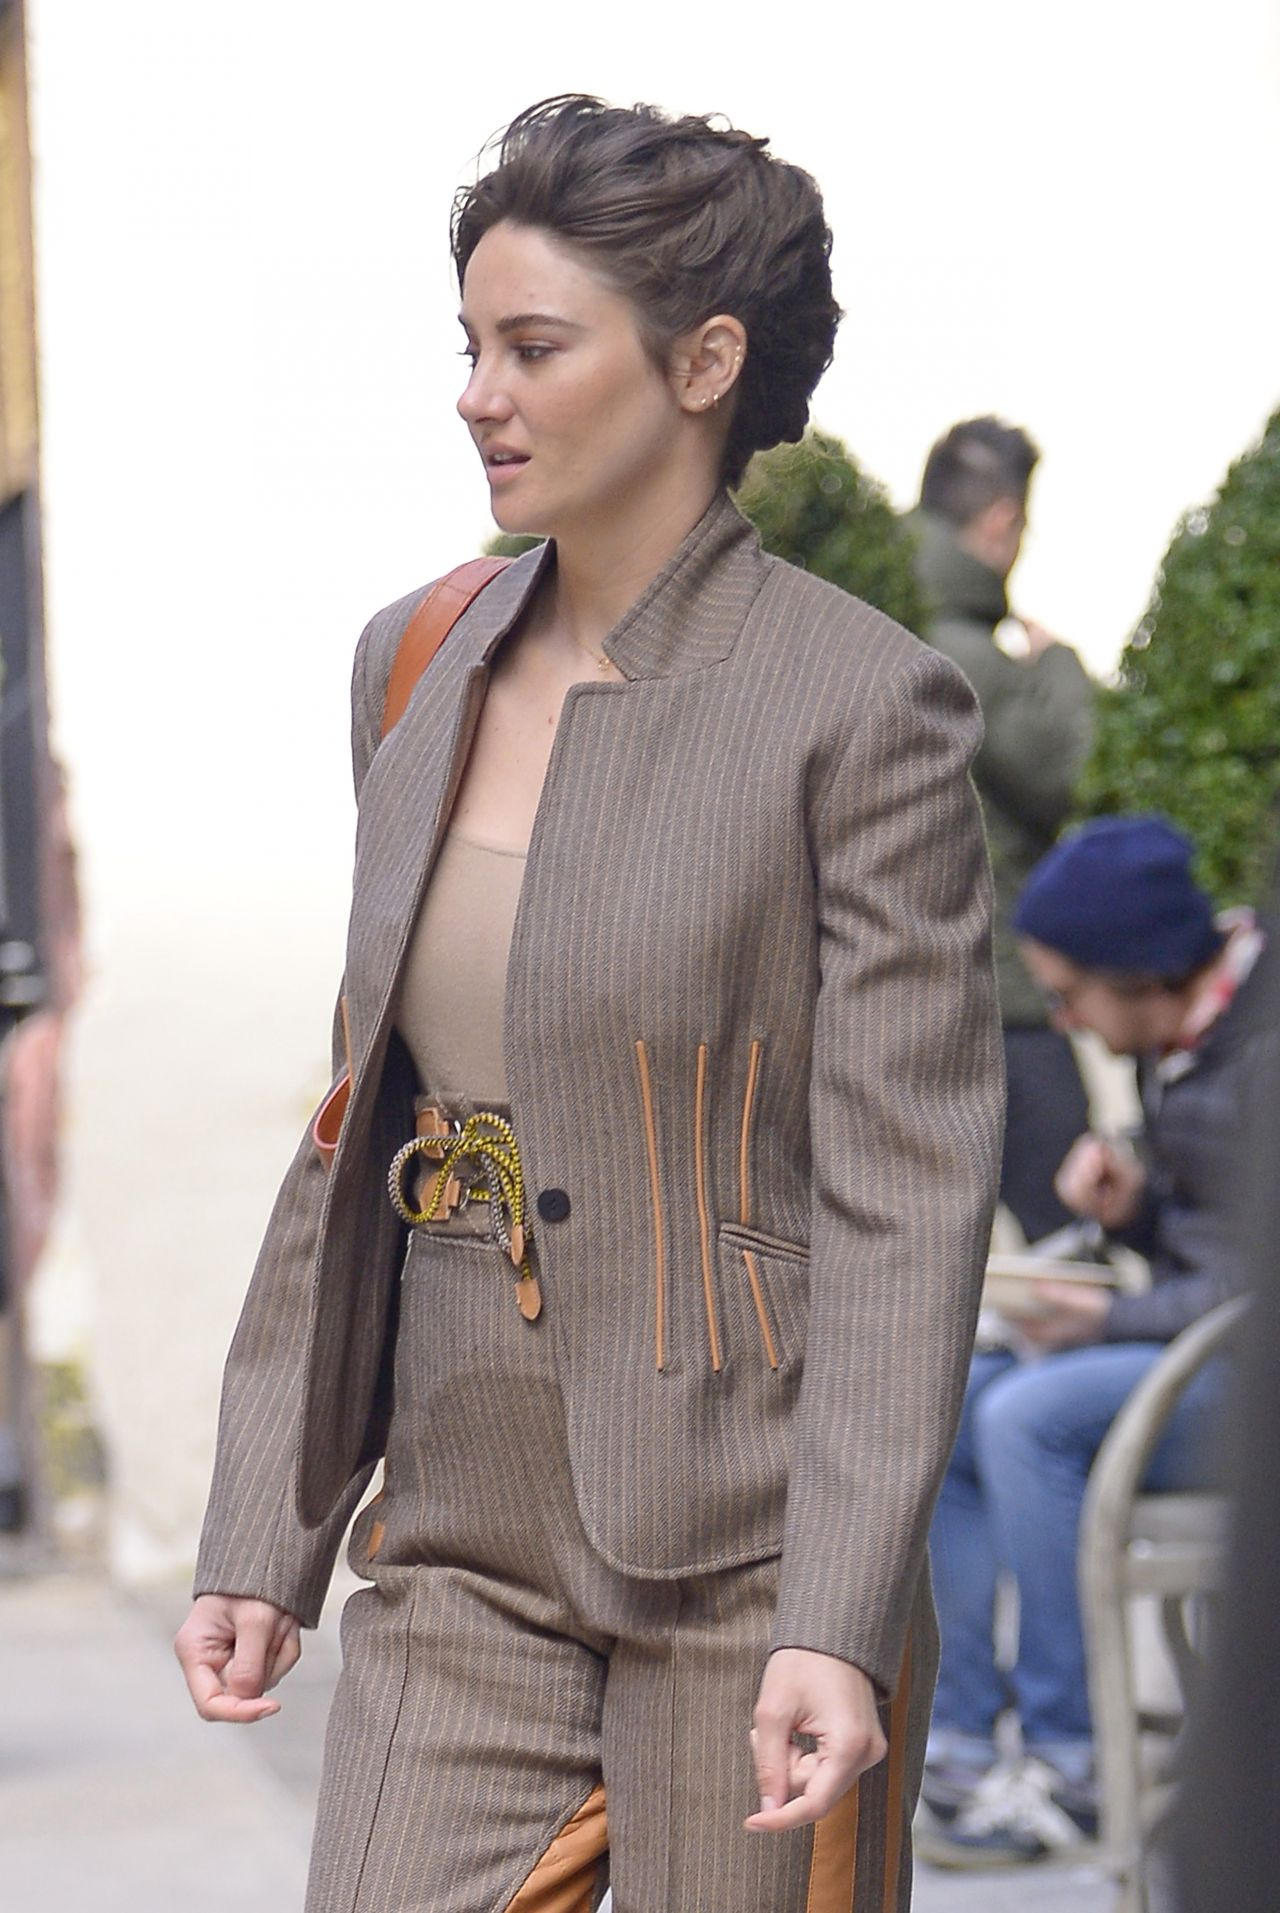 Shailene Woodley Looks Stylish 03 27 2019